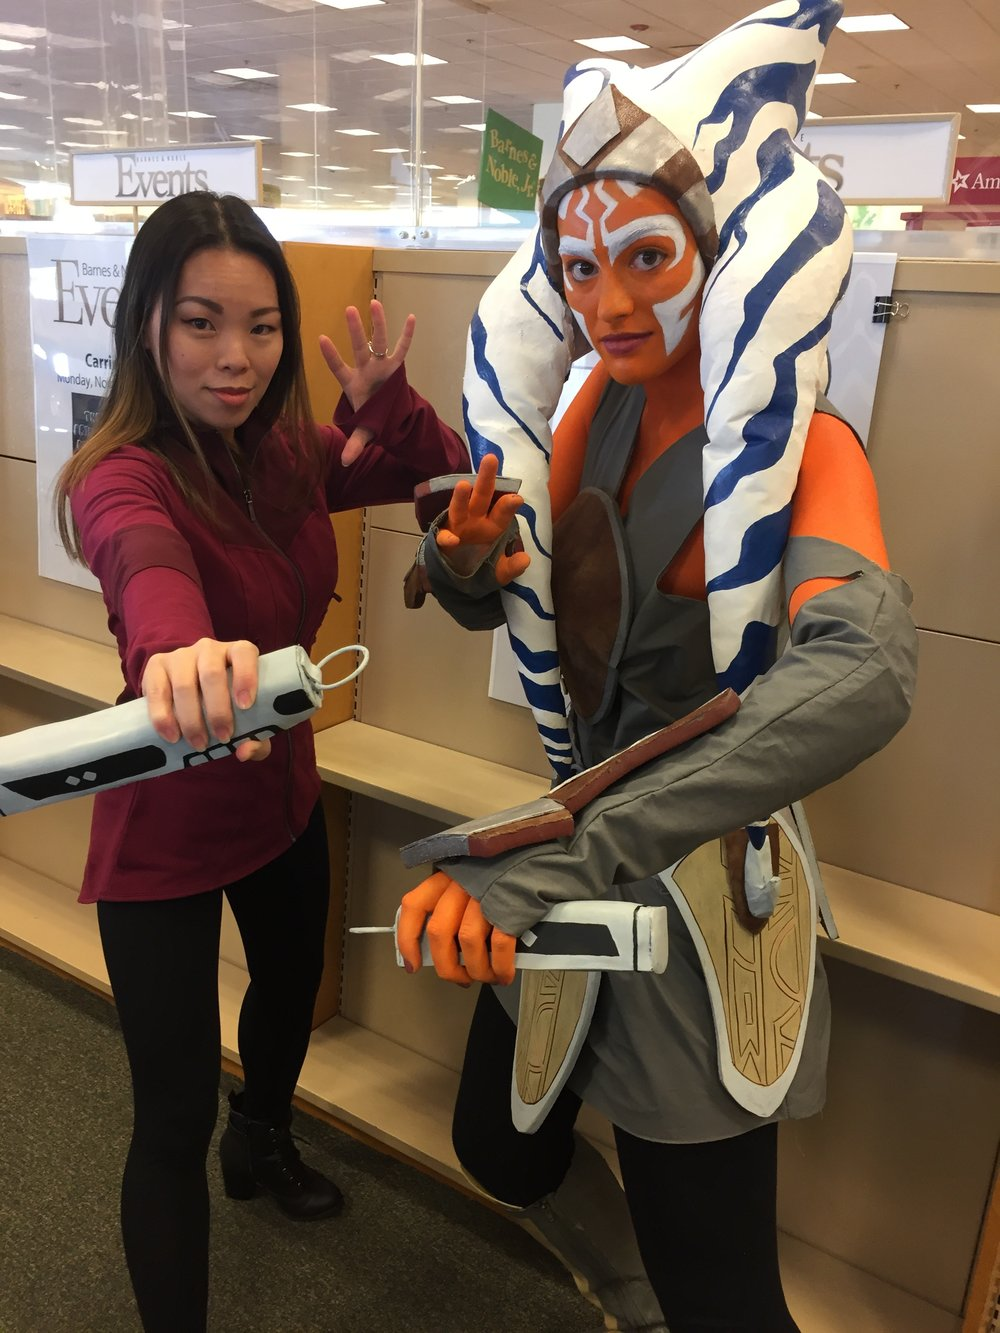 Fantastic Ahsoka cosplayer by Shea (@Shea_Cosplays)